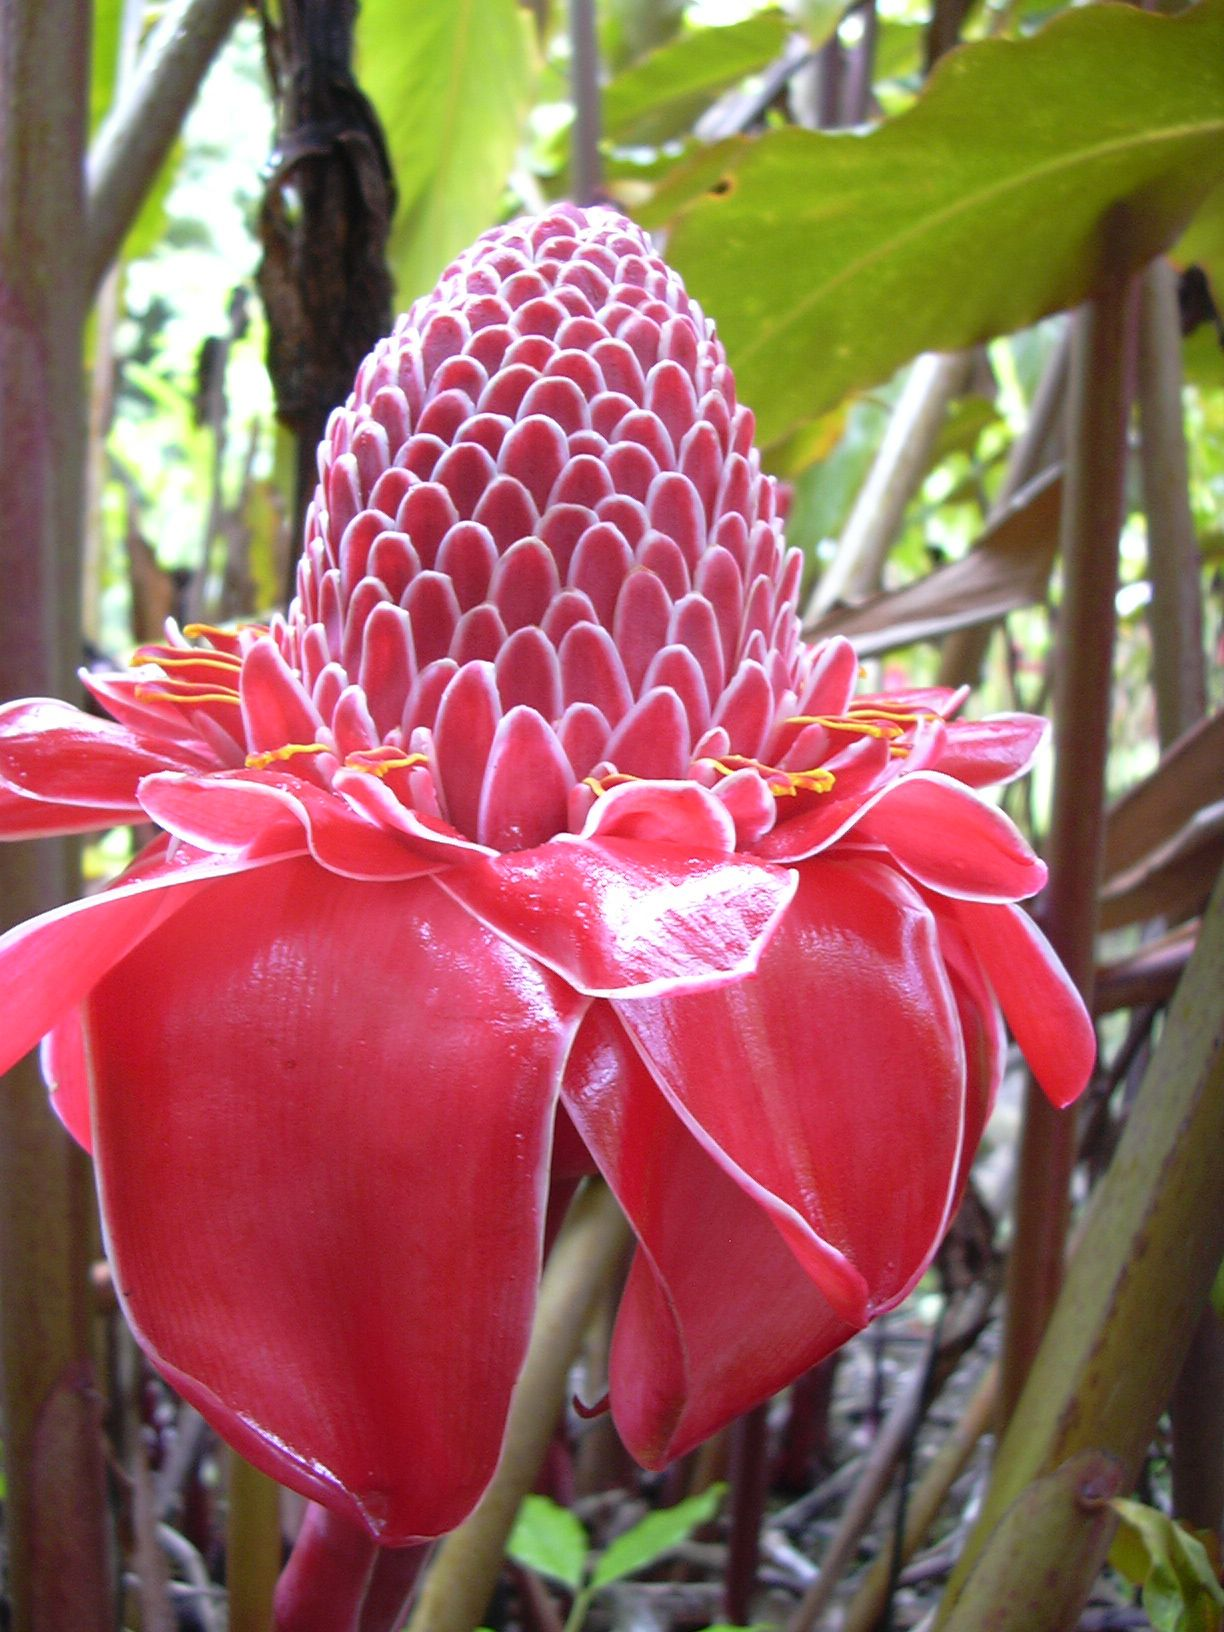 Etlingera Elatior Botanical Synonym Phaeomeria Magnifica Commonly Known As Torch Ginger Red Ginger Lily Torch Li Bunga Eksotis Bunga Tropis Menanam